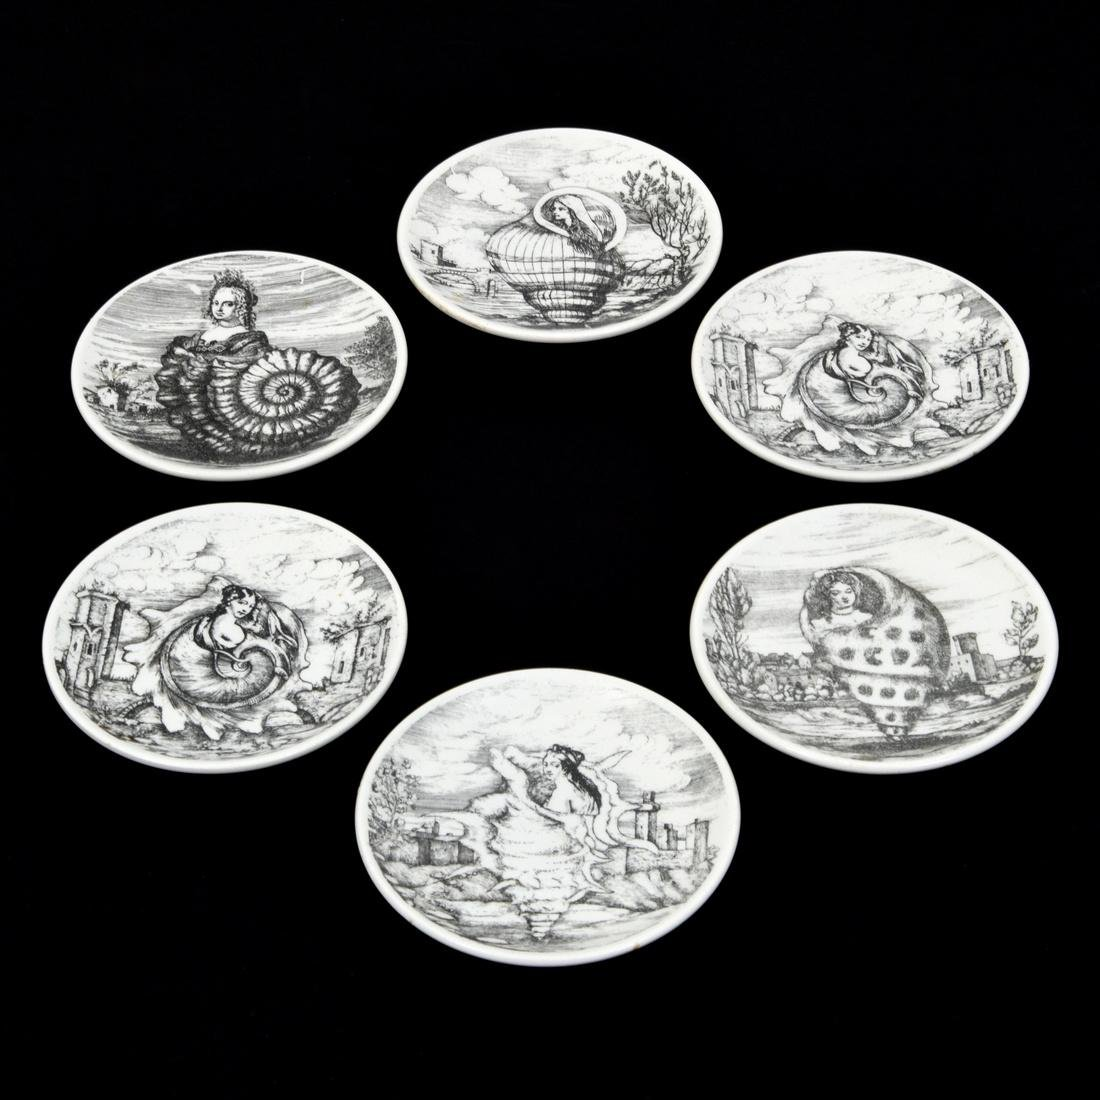 Piero Fornasetti LE OCEANIDI Coasters, Set of 6